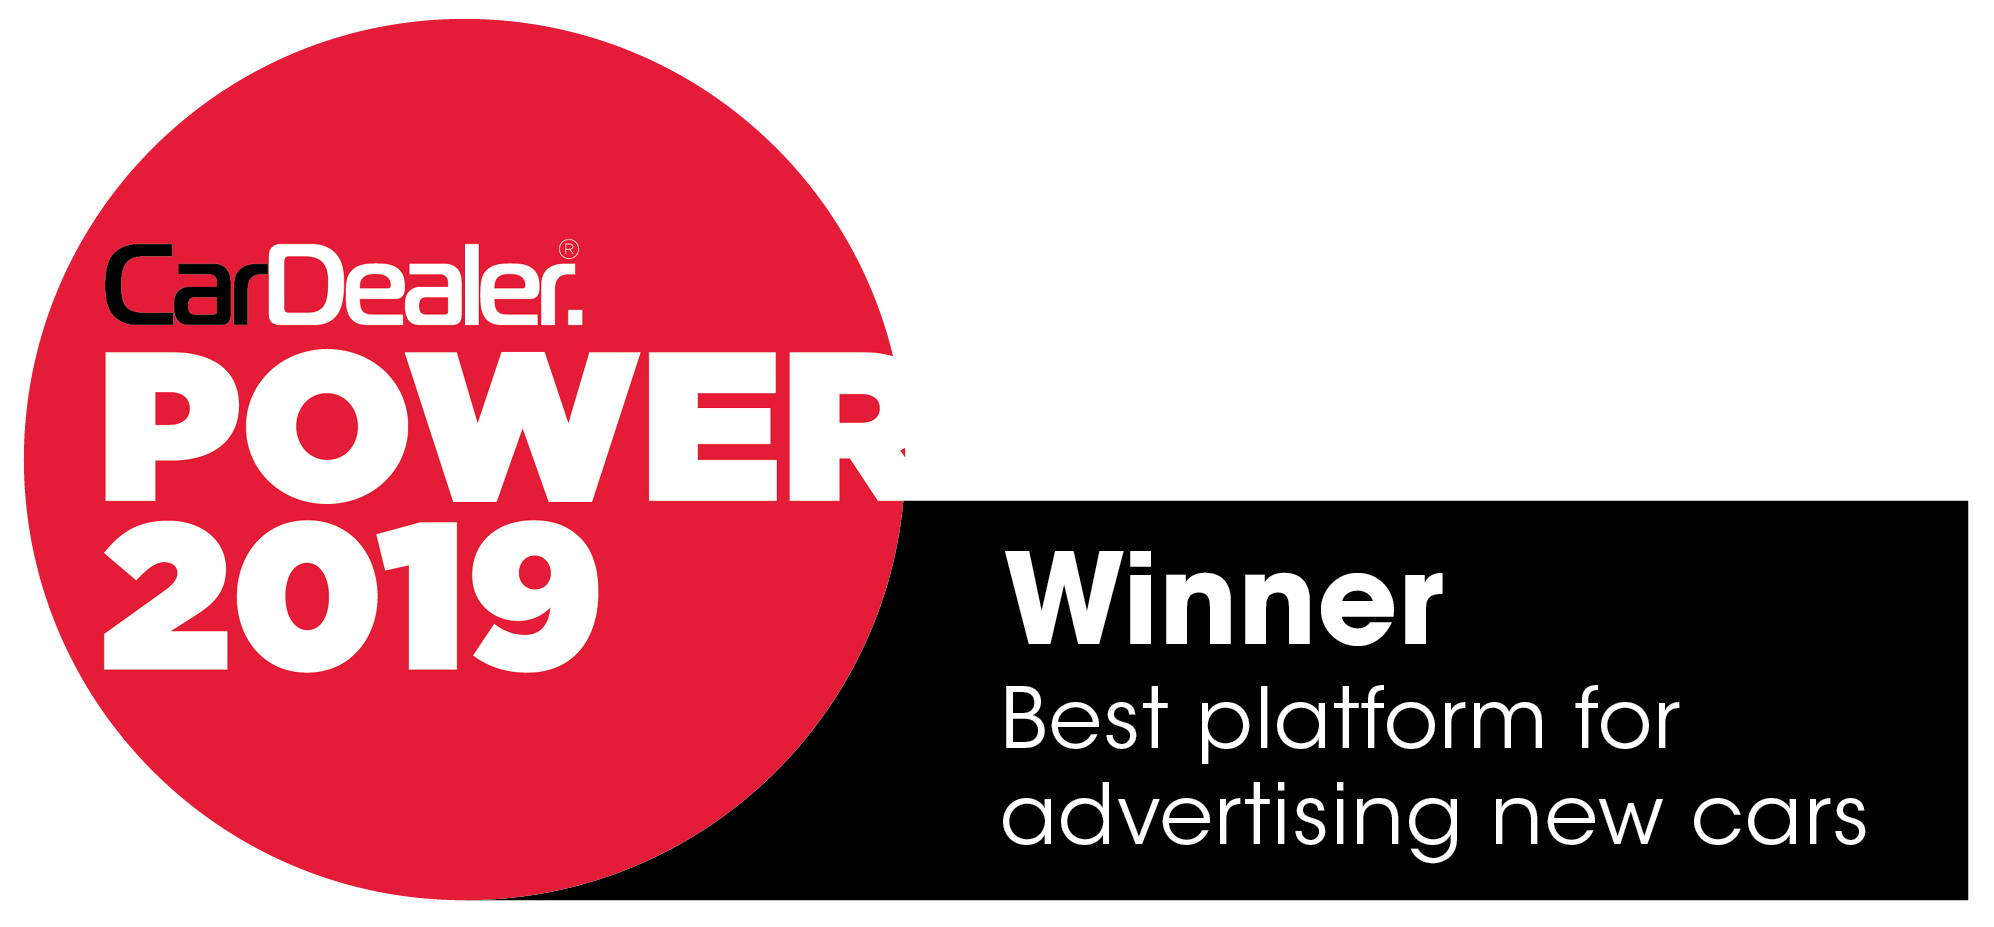 What Car? Crowned The Best Online Advertiser For New Cars